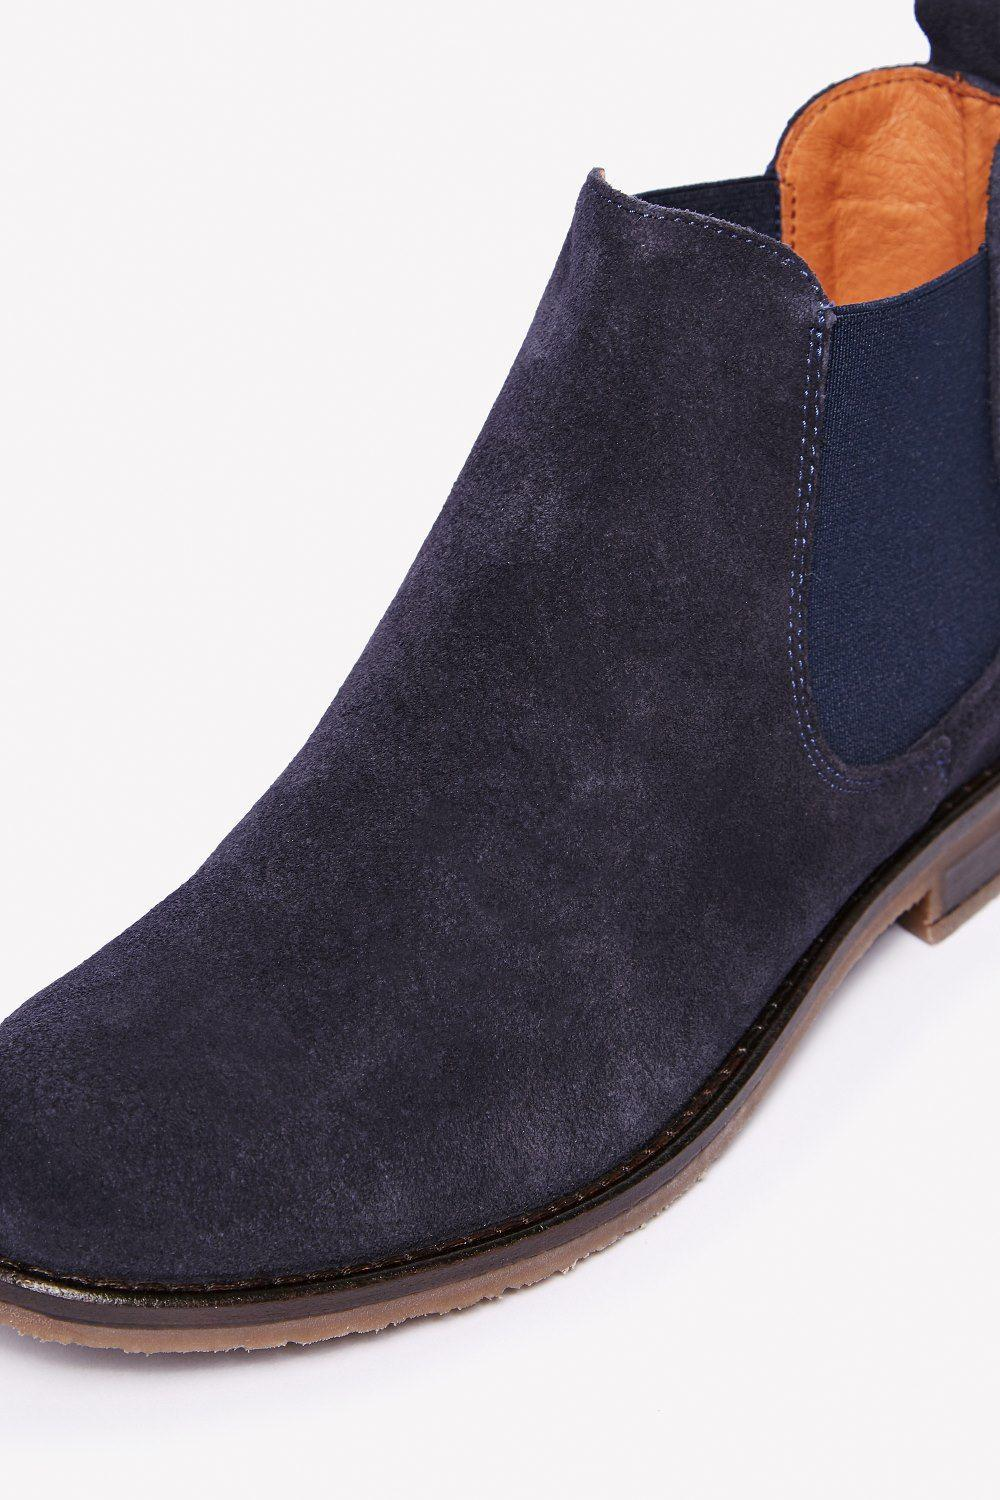 d2855047ff8c7 Jack Wills Sharnbrook Suede Chelsea Boots in Blue for Men - Lyst